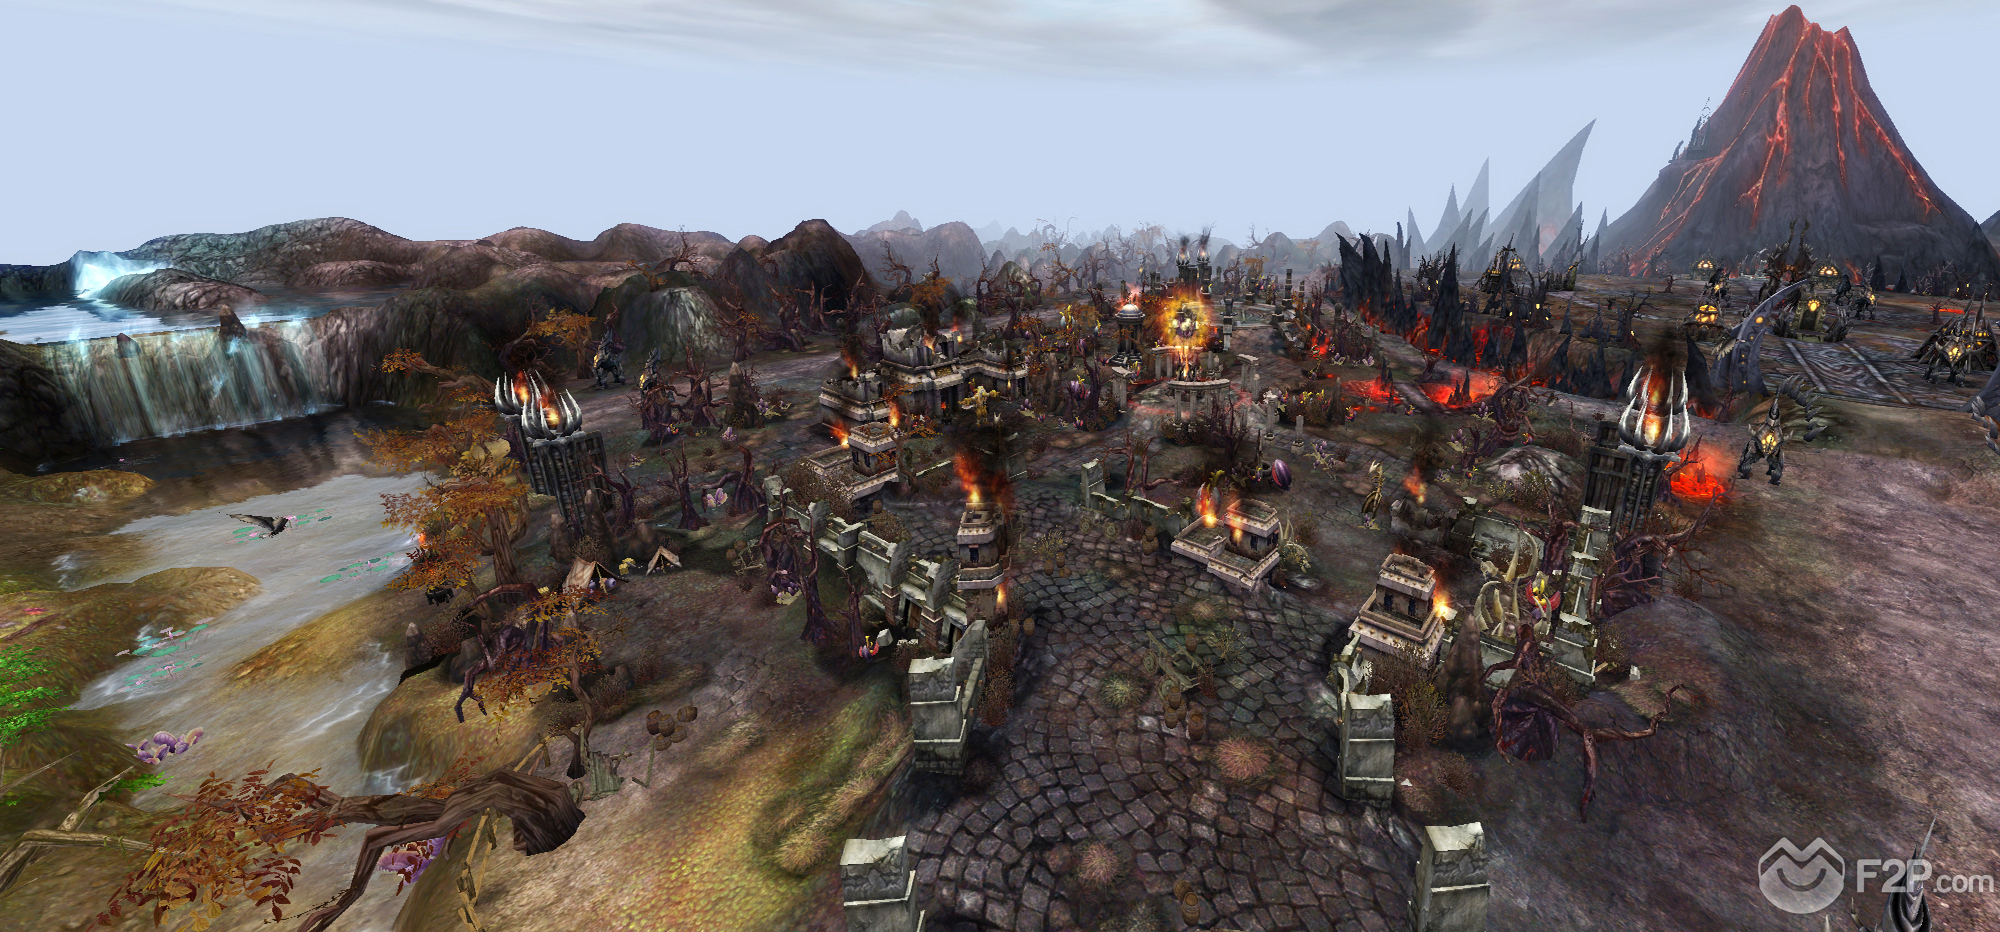 Click image for larger version.Name:Realm of the Titans 4.jpgViews:321Size:1.79 MBID:3355